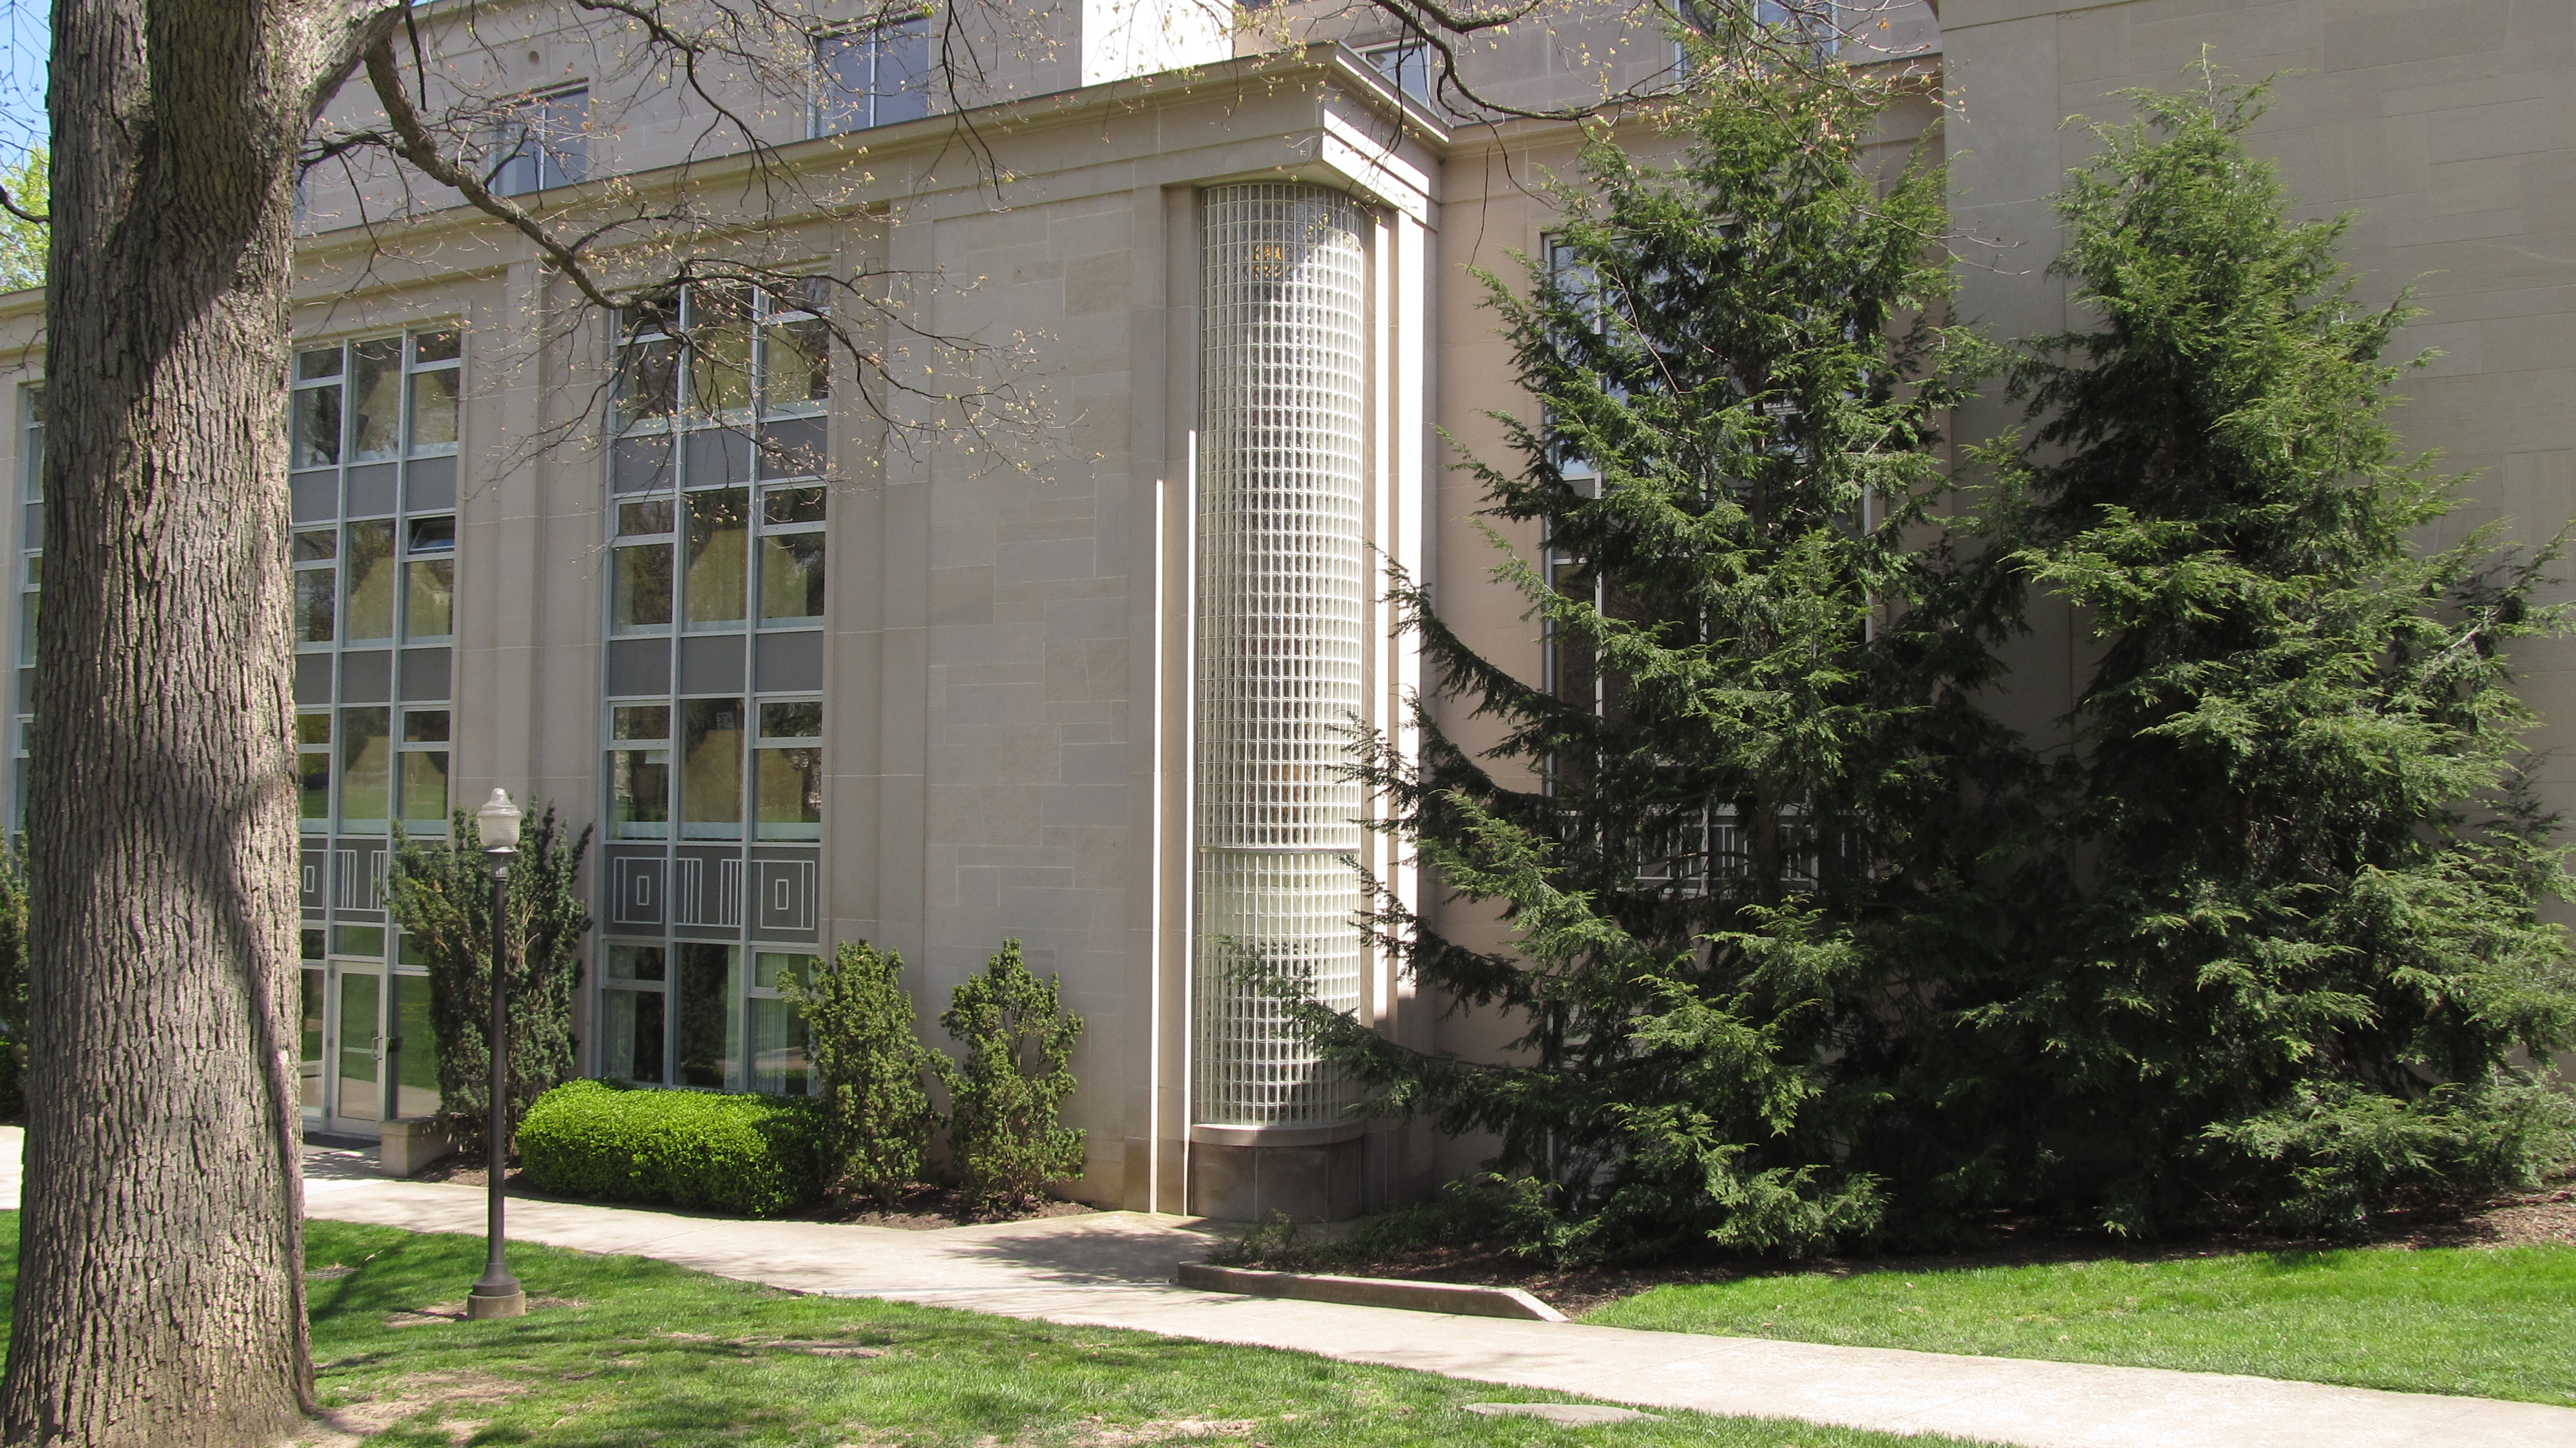 College of Wooster Library Wooster, OH (7)